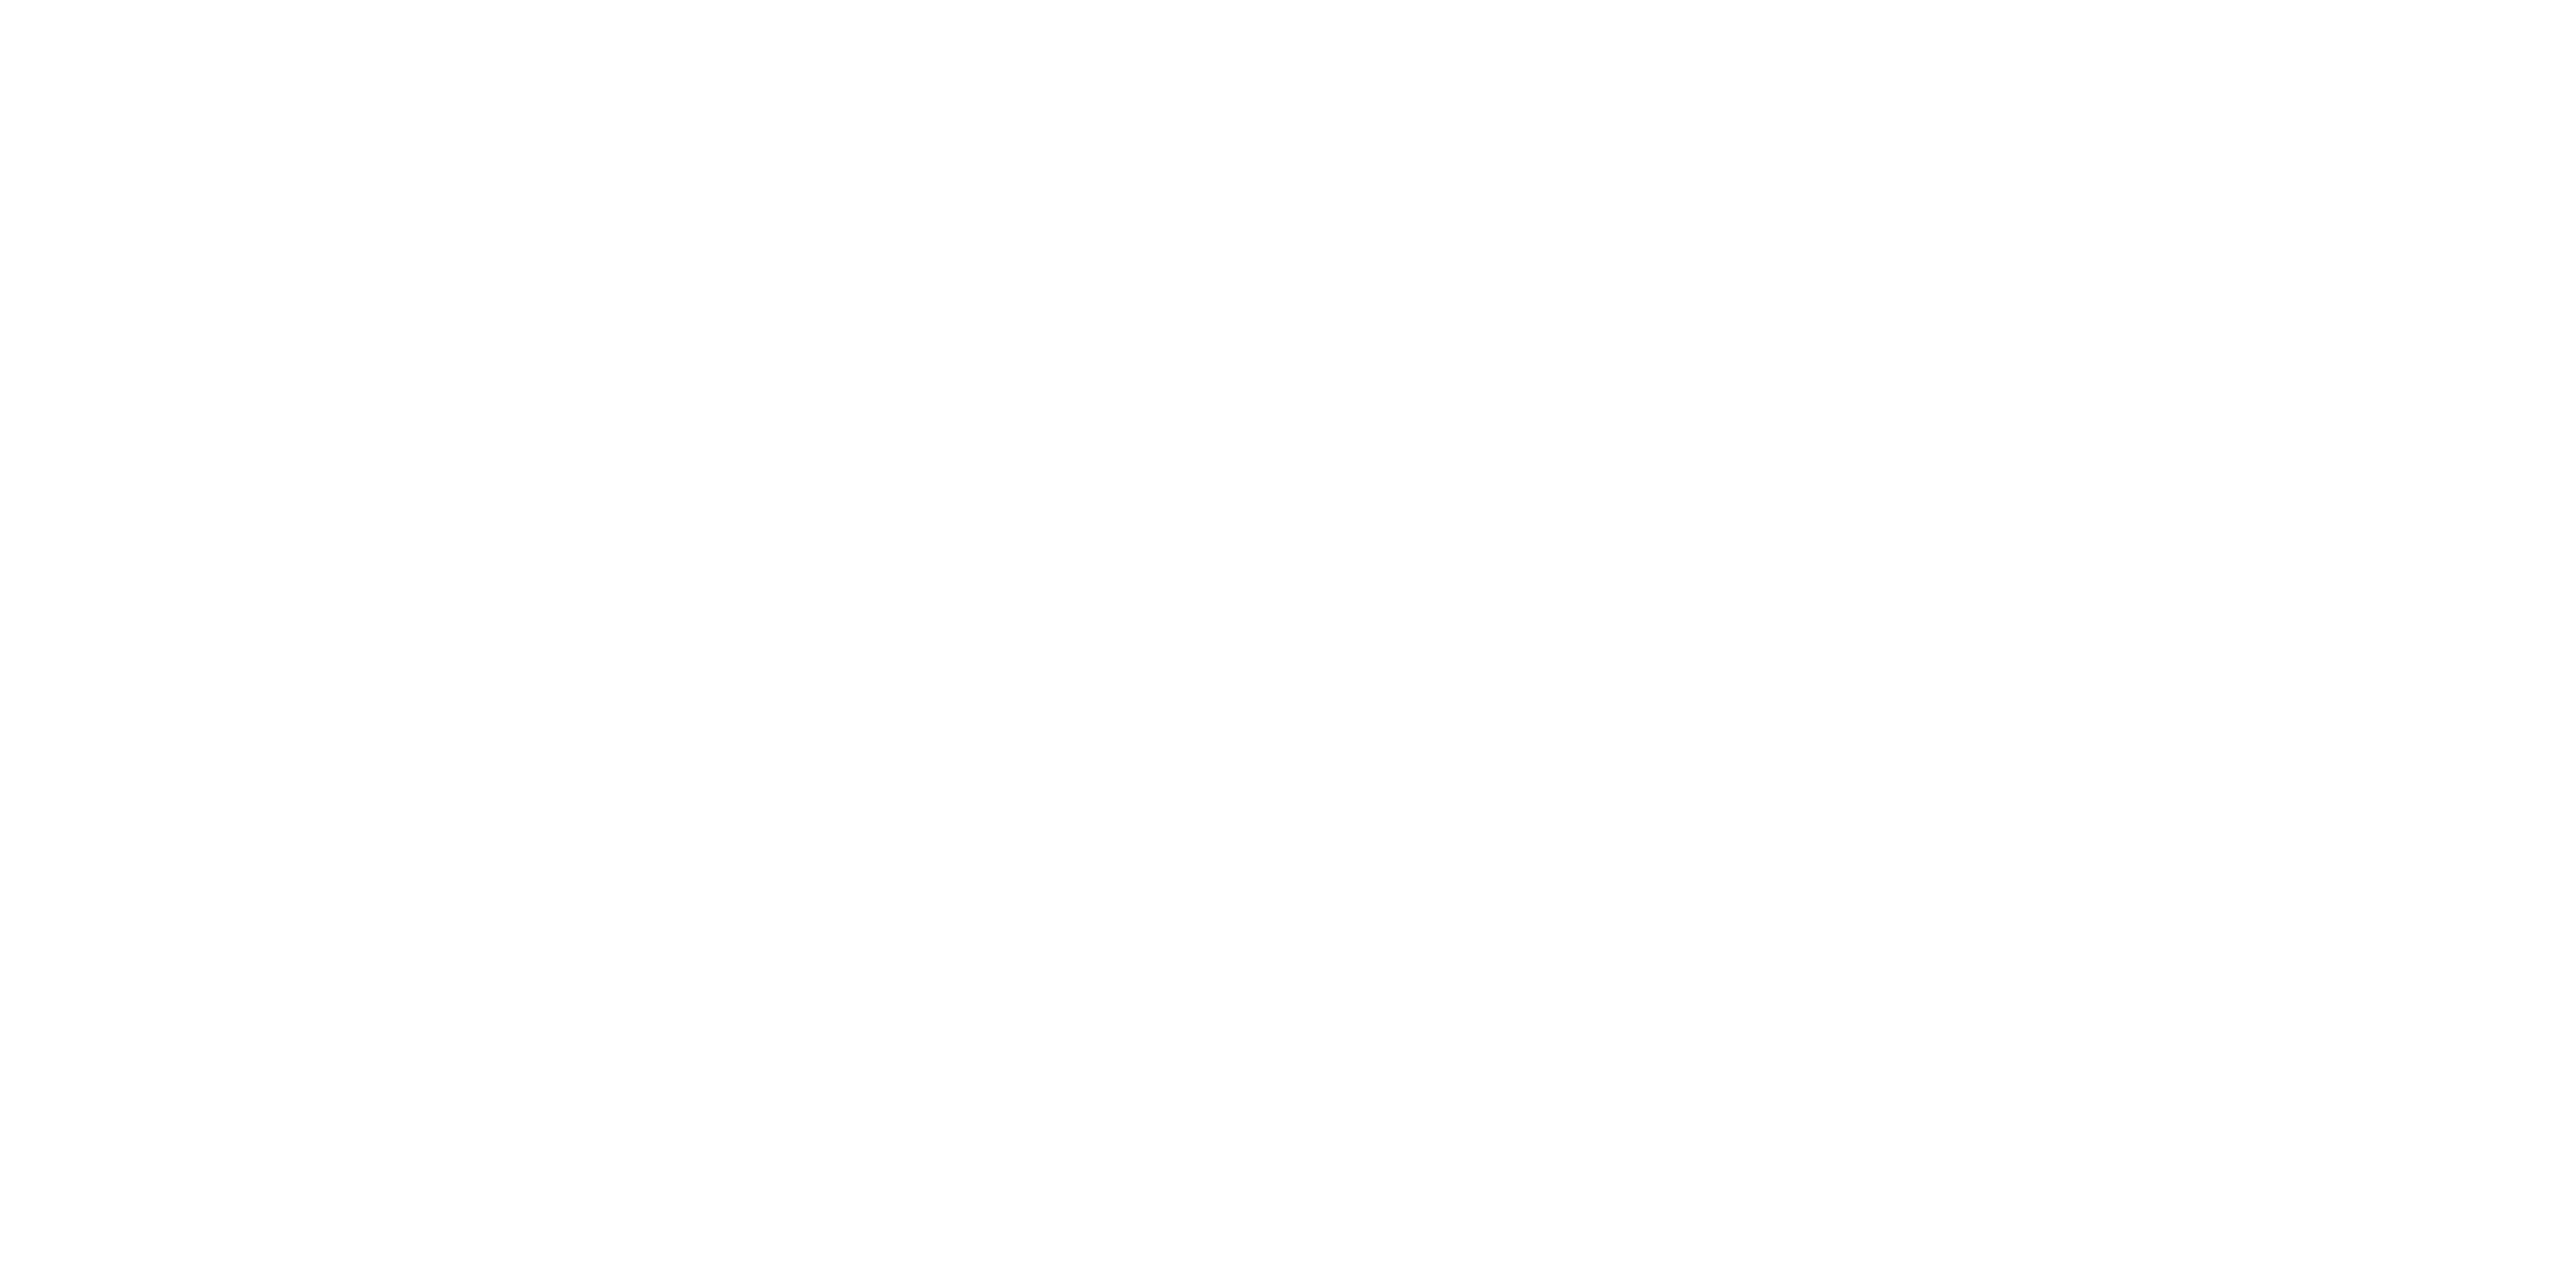 Capital Asset Resources